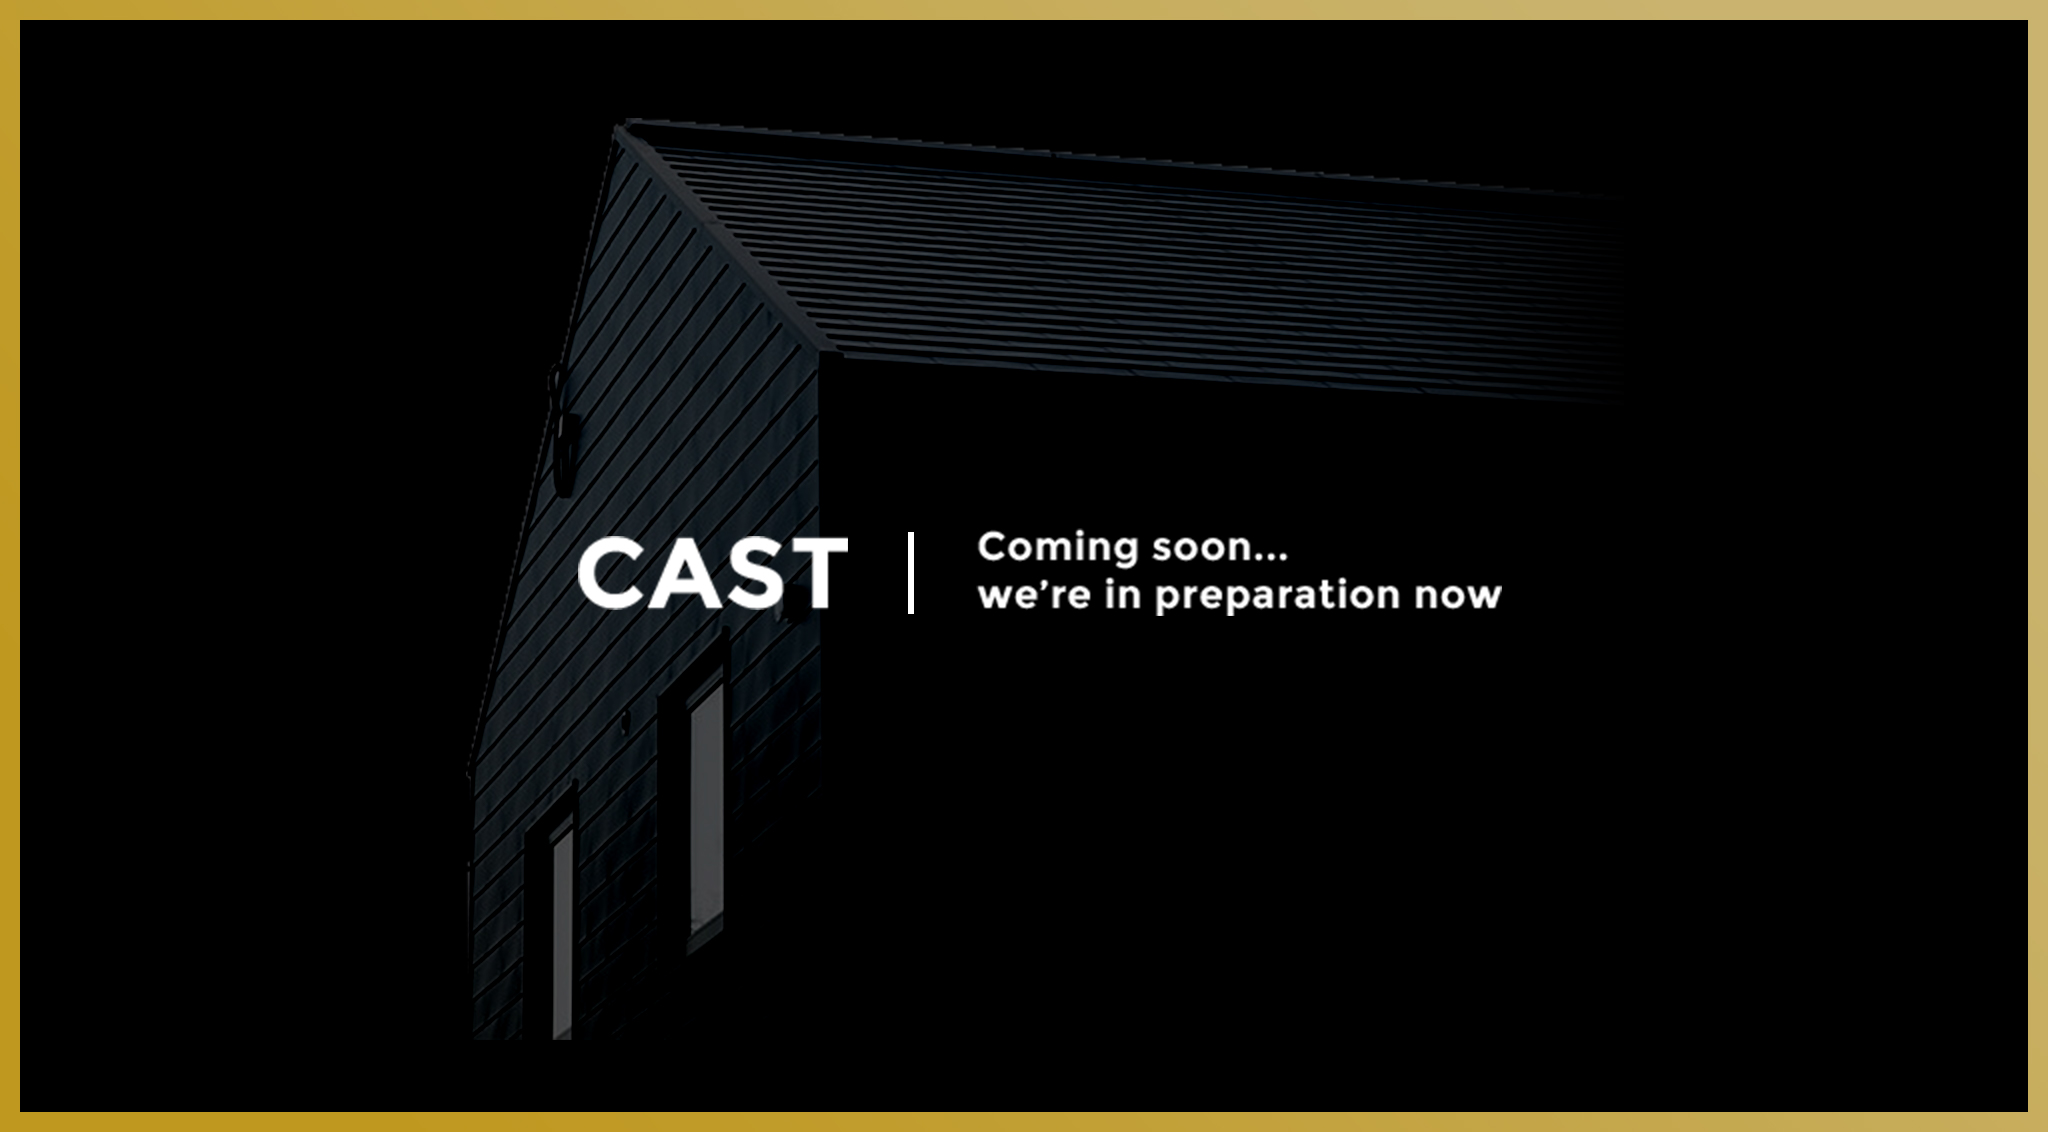 Cast. Comming soon.